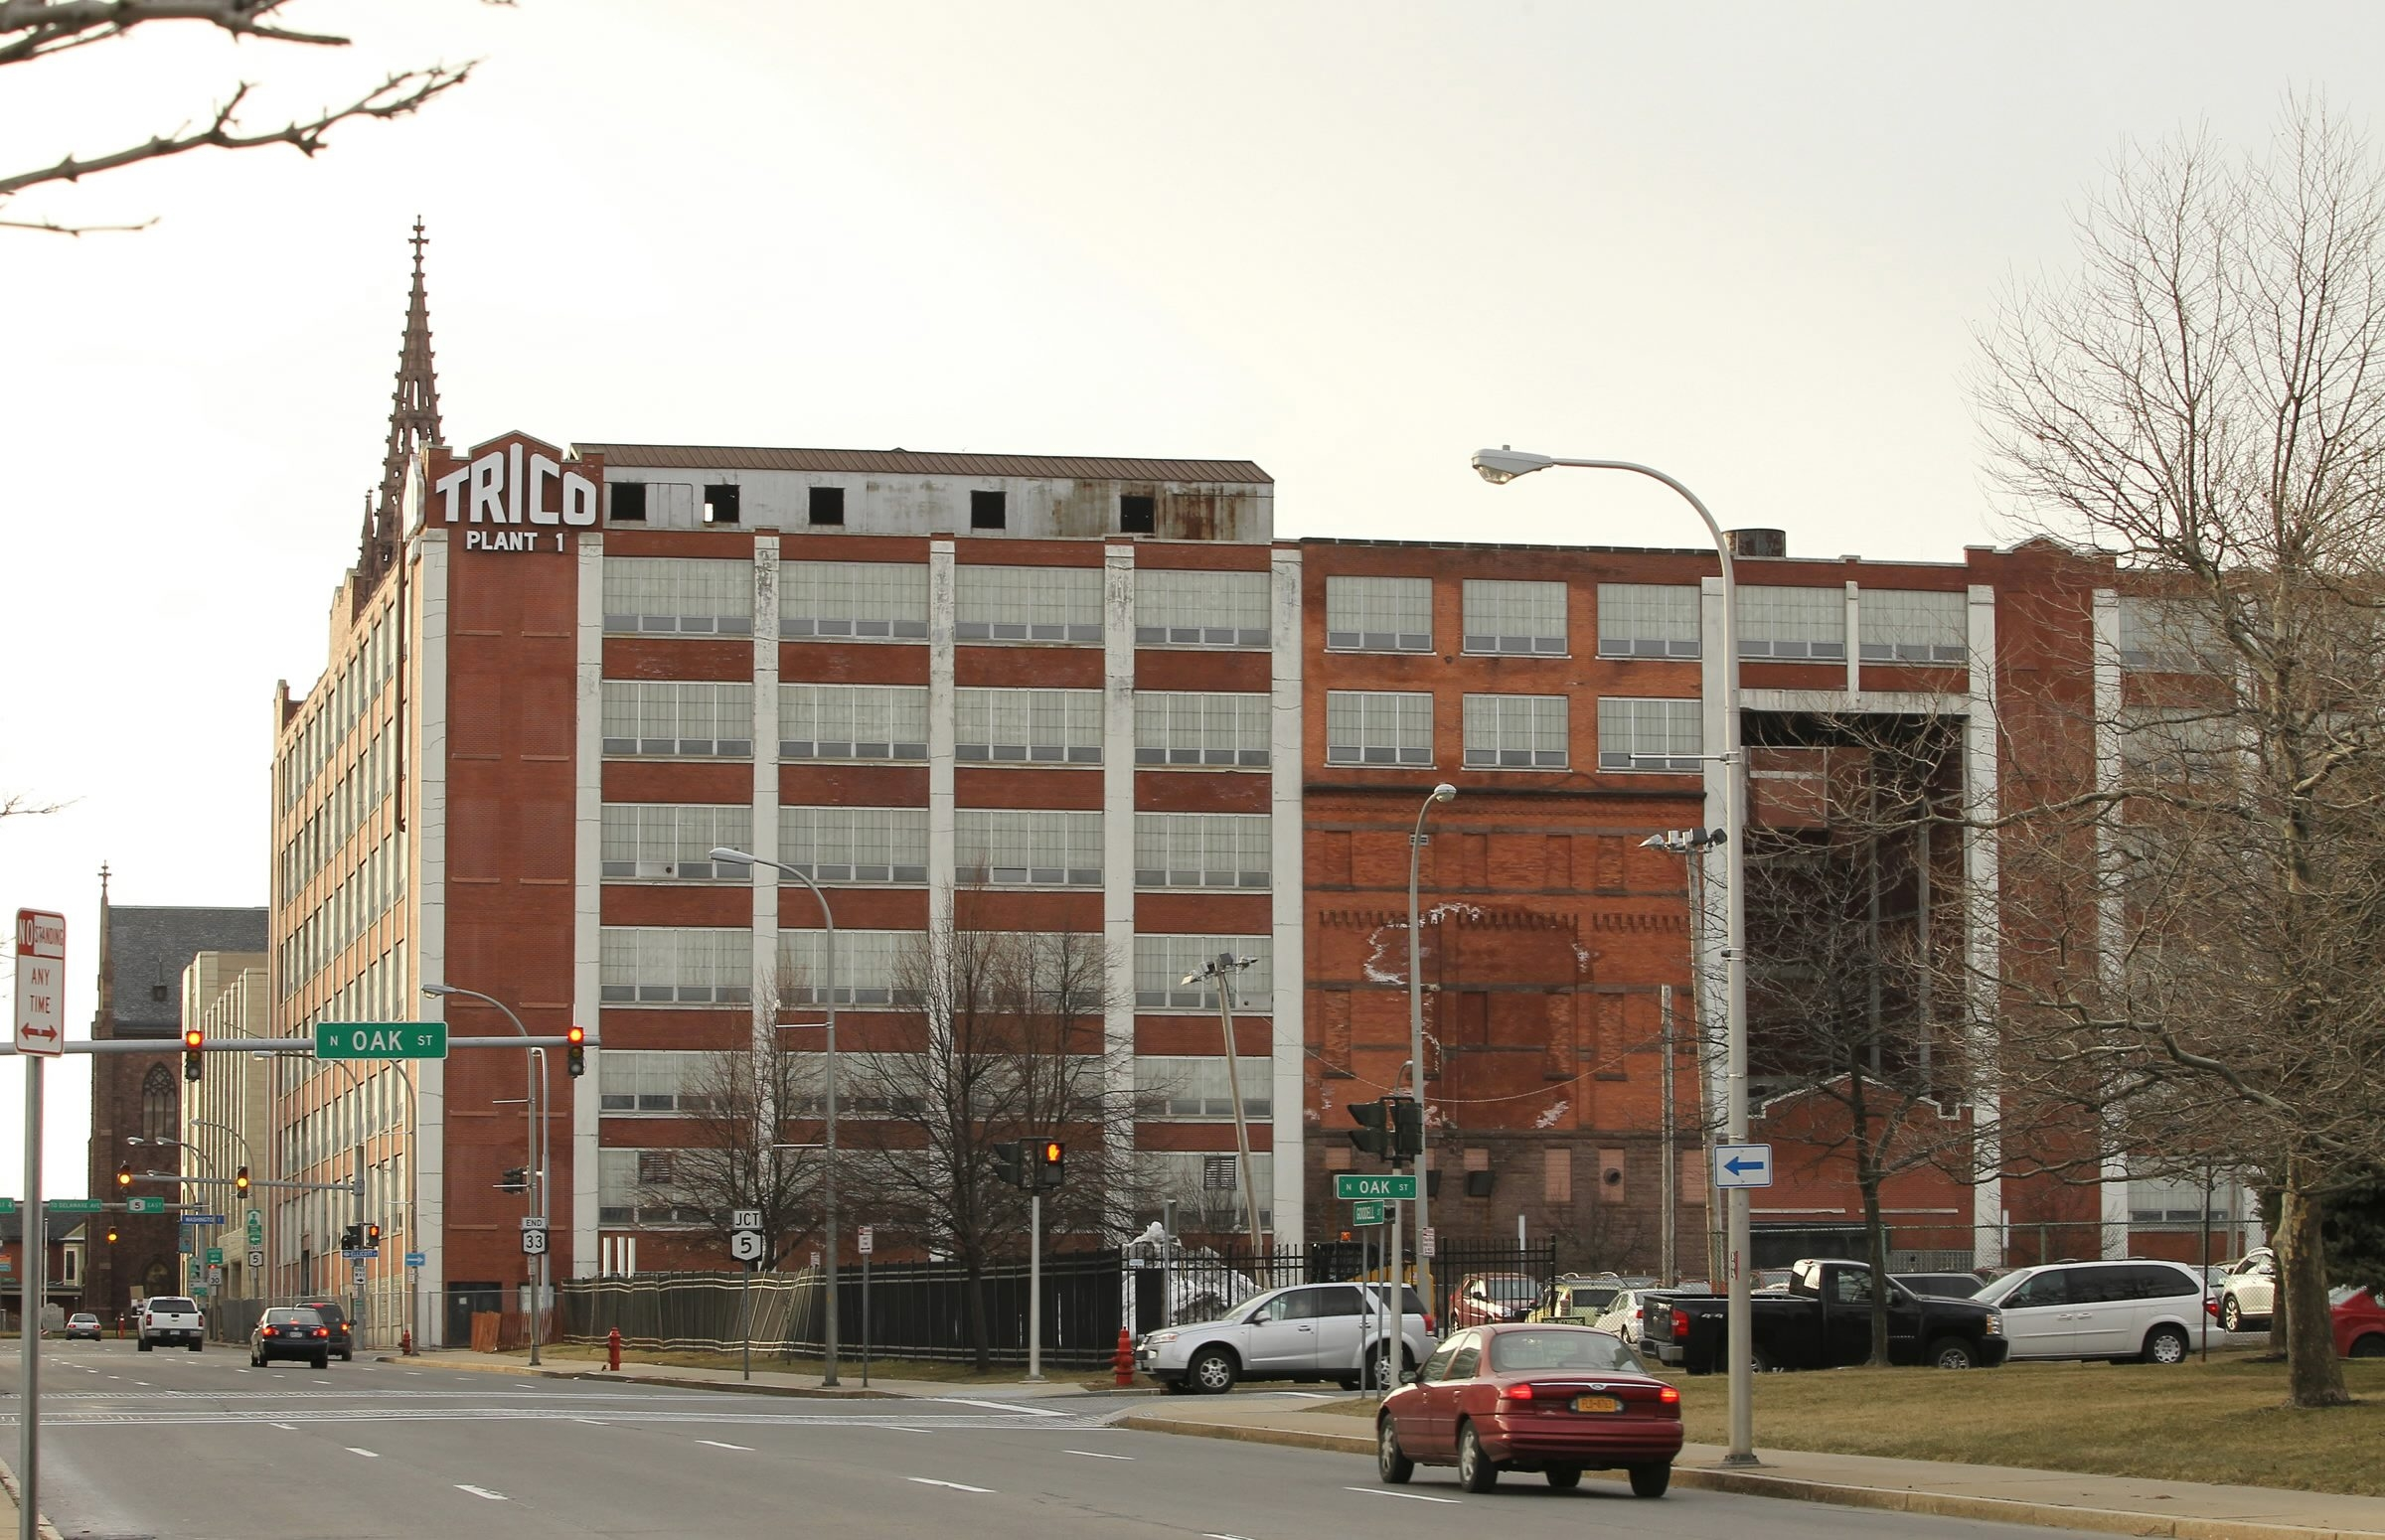 Peter Krog, who is seeking rights to the Trico factory, is interested in creating an extended-stay hotel.